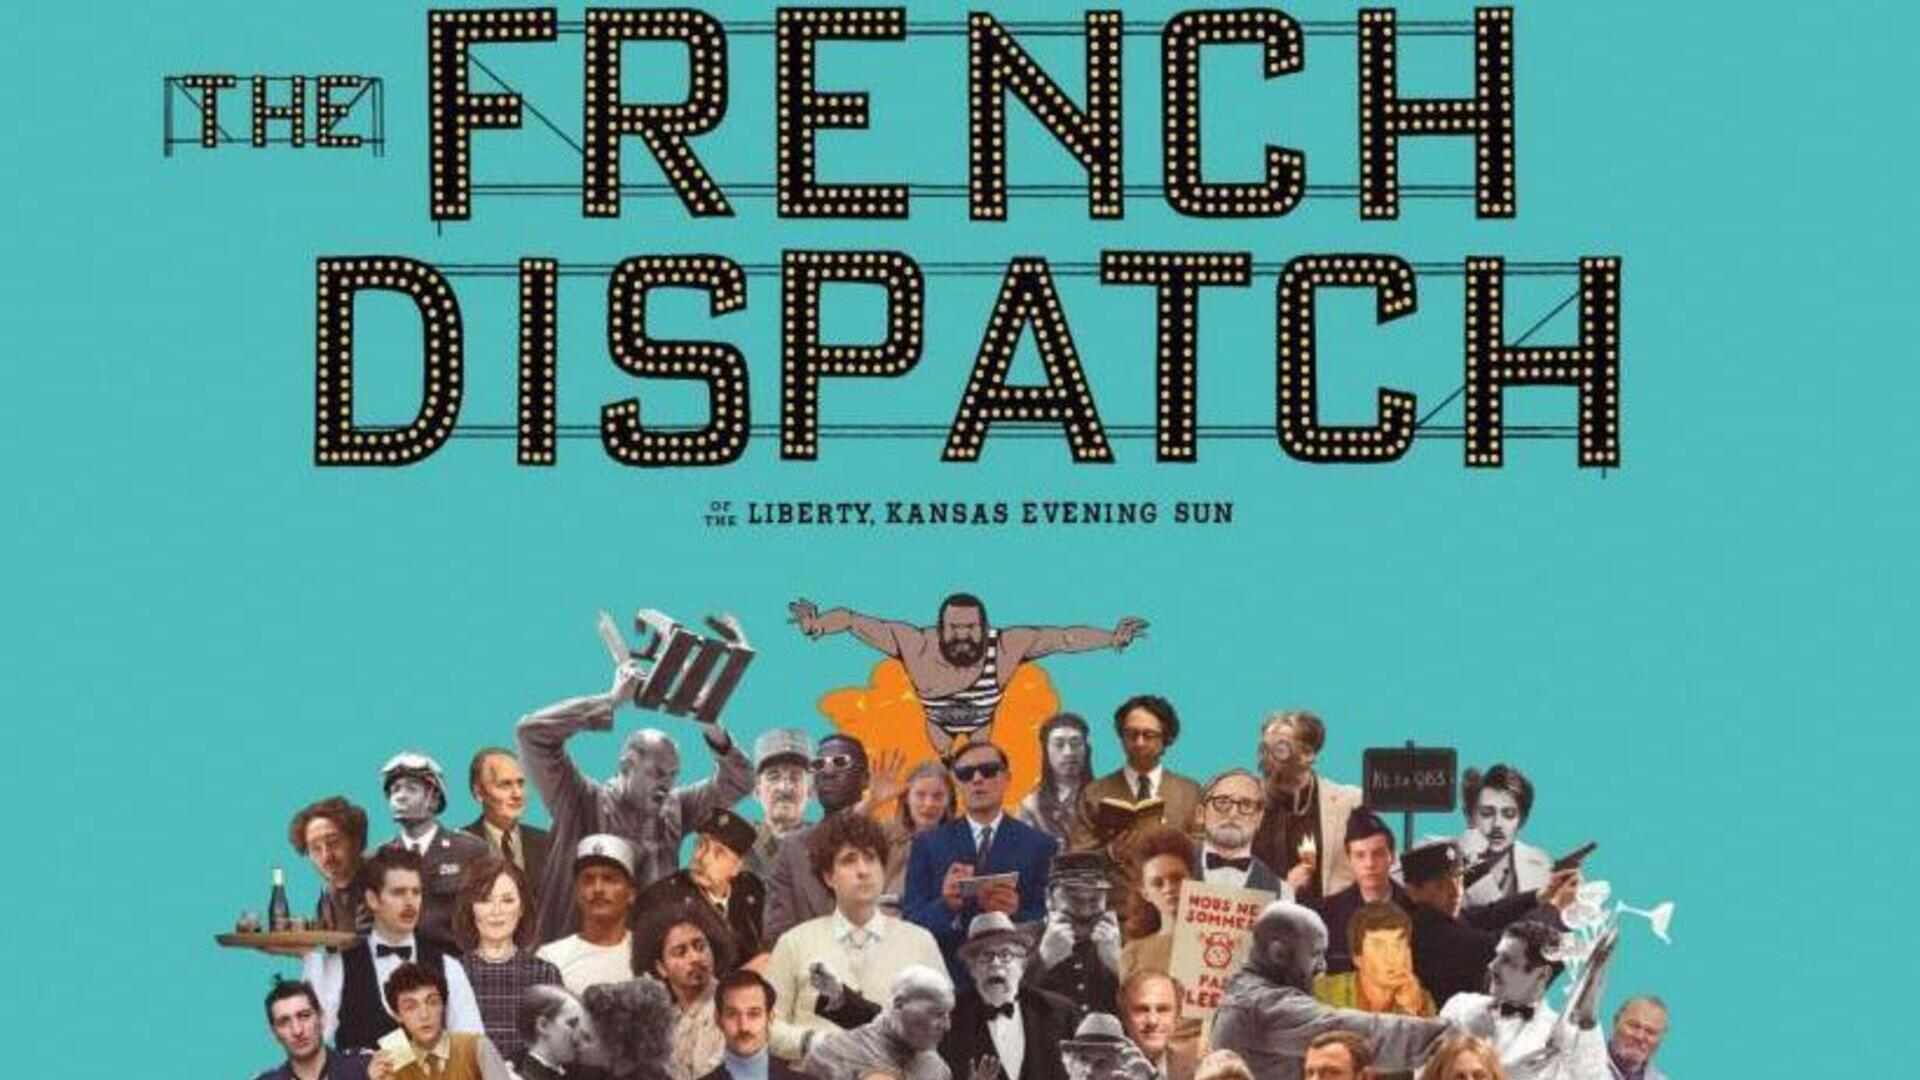 All you need to know about The French Dispatch, Wes Anderson's latest movie